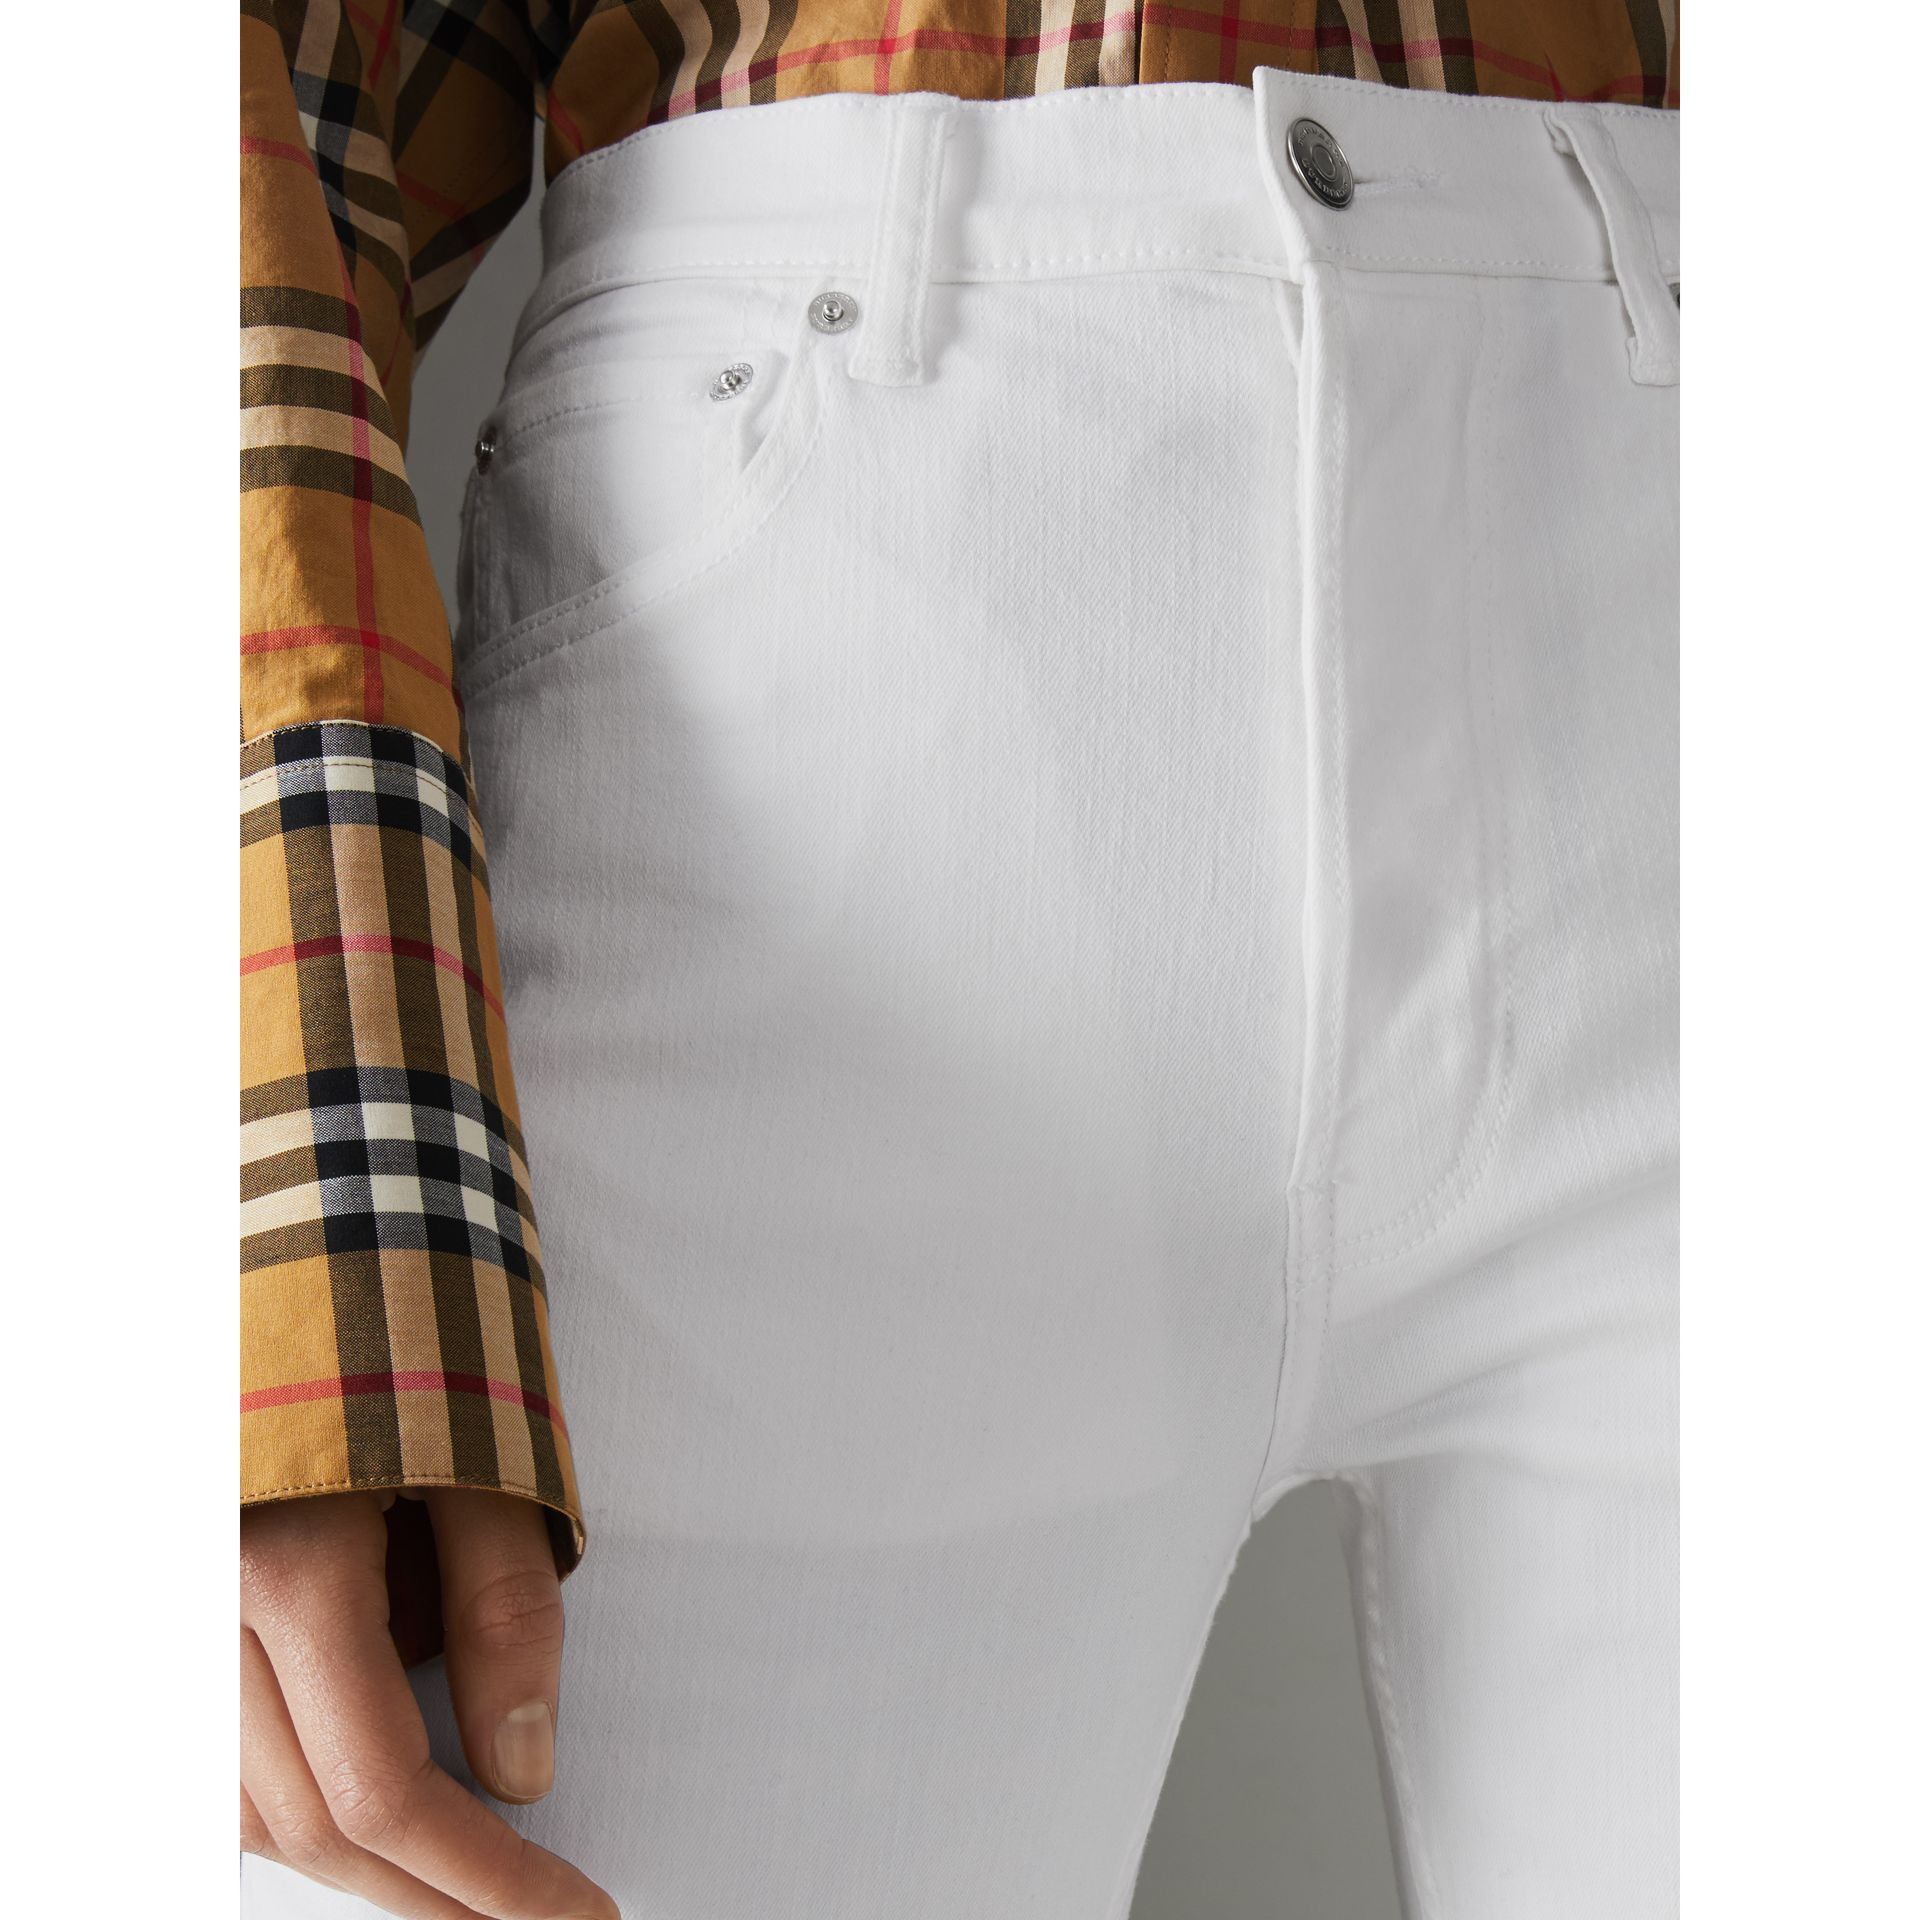 Straight Fit Power-stretch Denim Jeans in White - Women | Burberry United States - gallery image 5